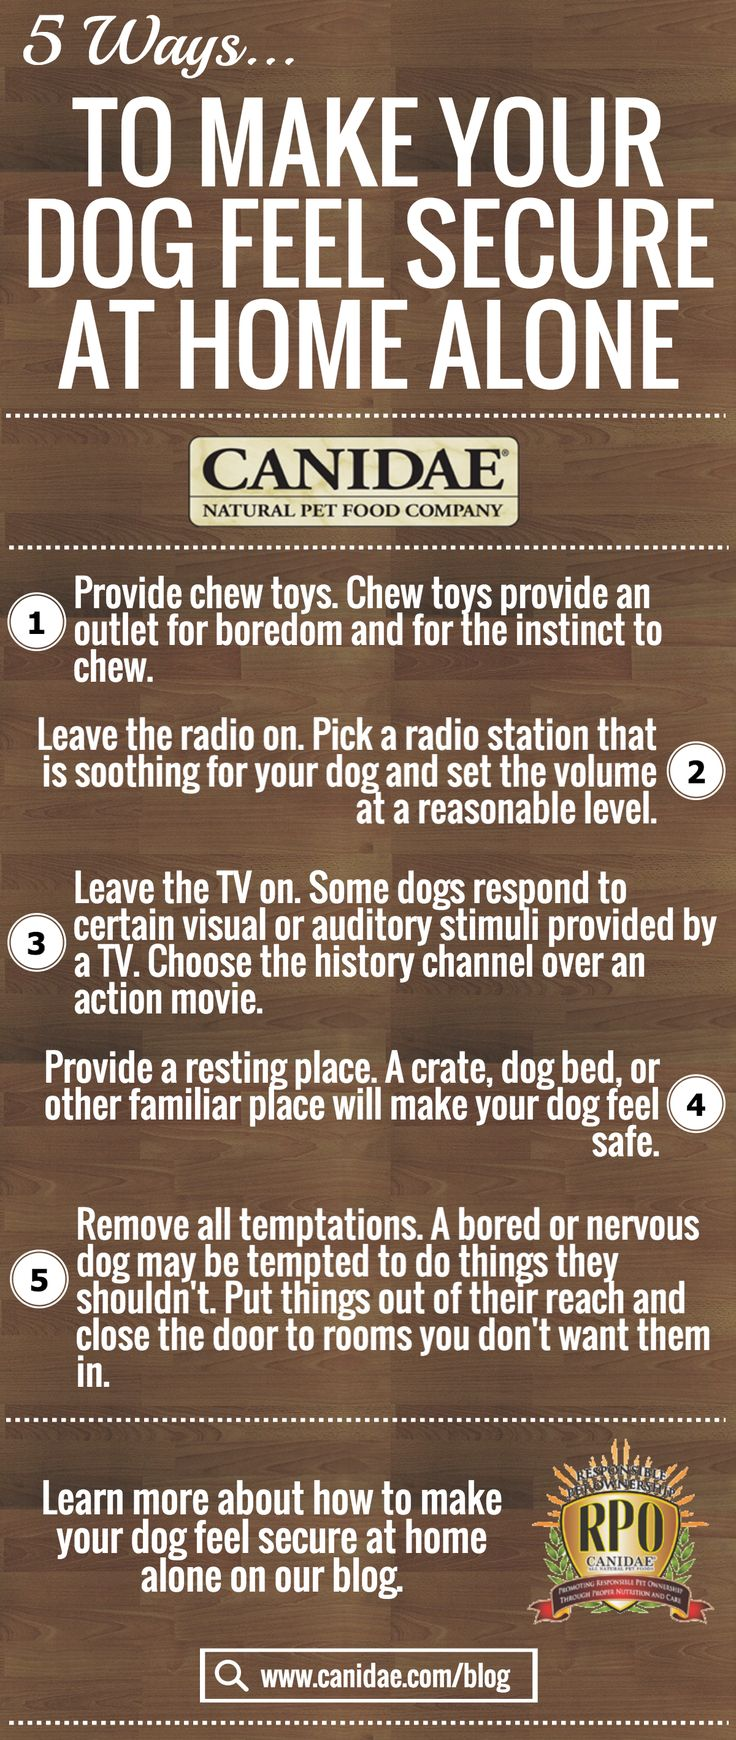 Ways To Make Your Dog Feel Secure At Home Alone | CANIDAE Blog